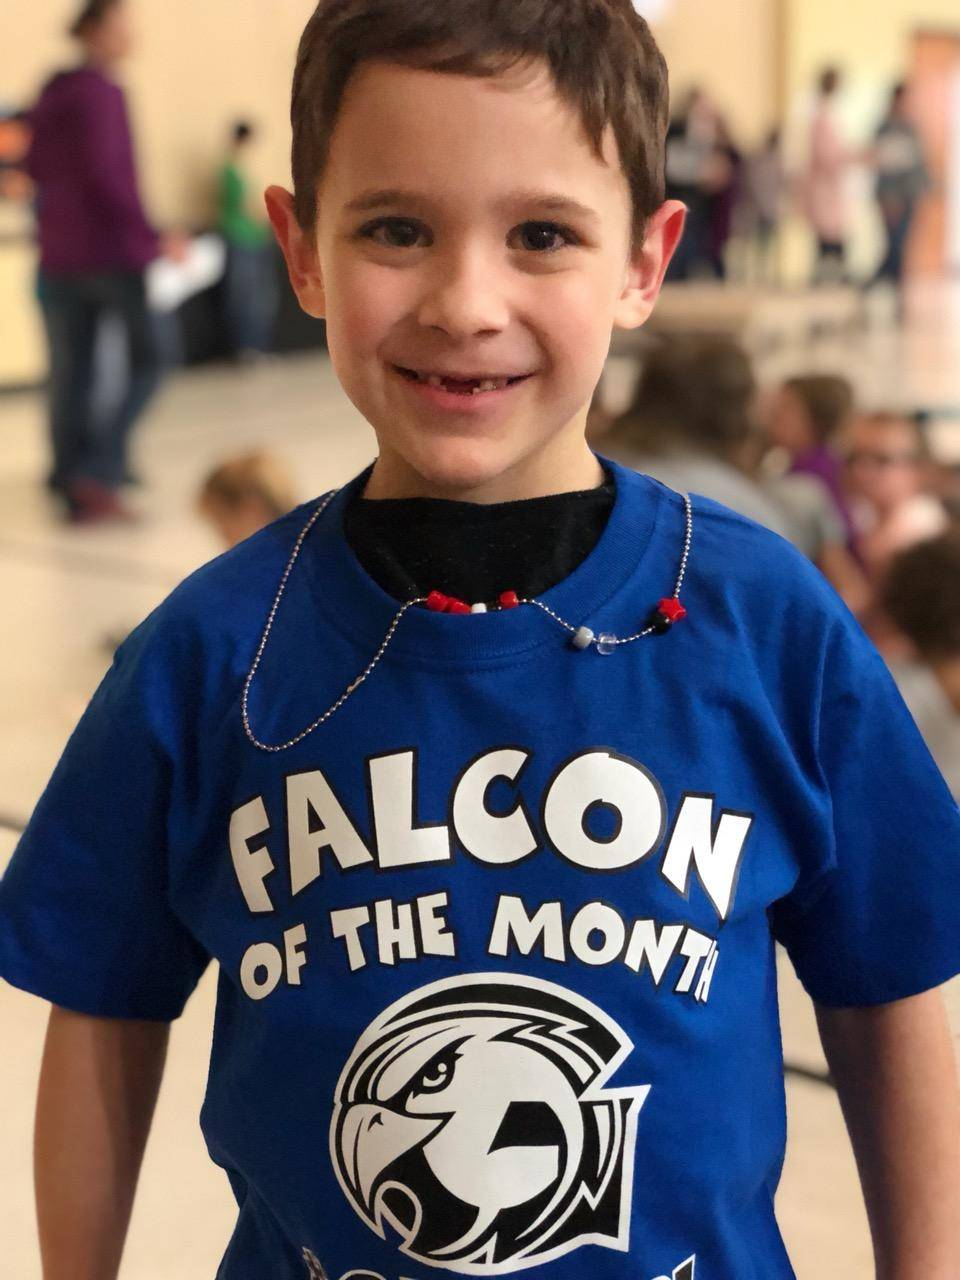 Falcon of the Month